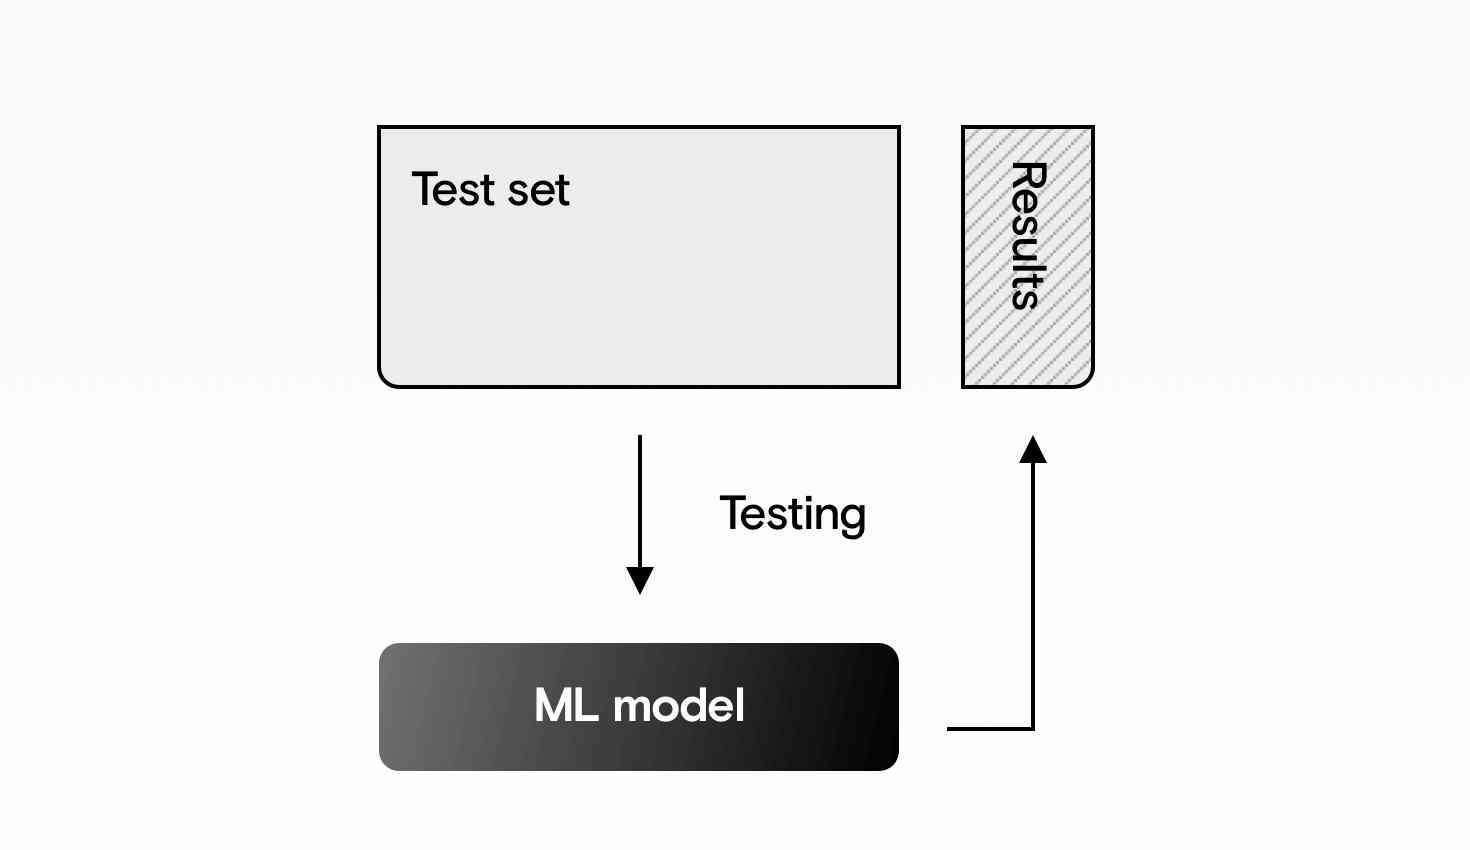 Testing the machine learning model on the test dataset.